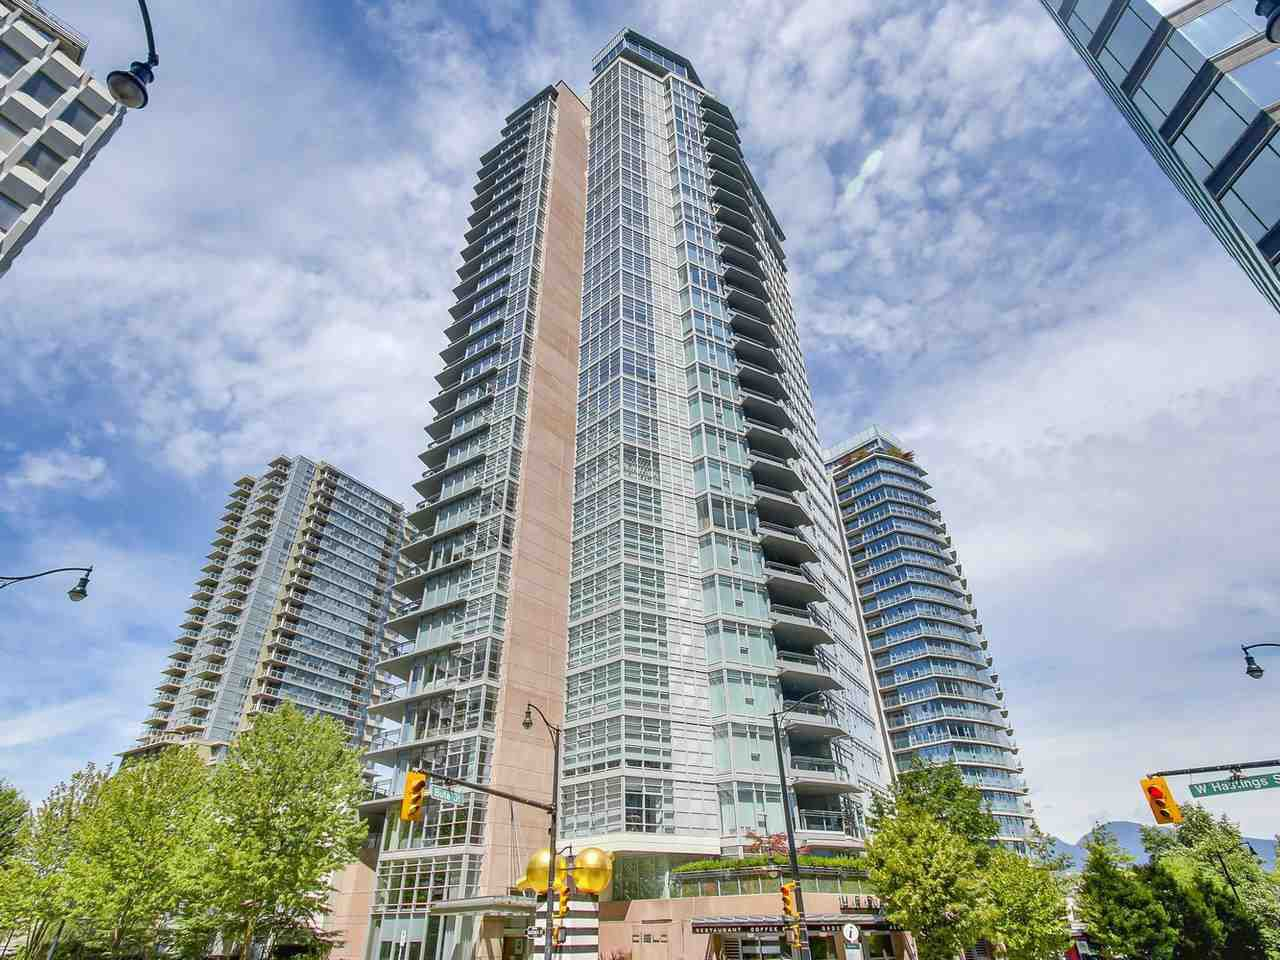 Main Photo: 2301 1205 W HASTINGS STREET in Vancouver: Coal Harbour Condo for sale (Vancouver West)  : MLS®# R2191331